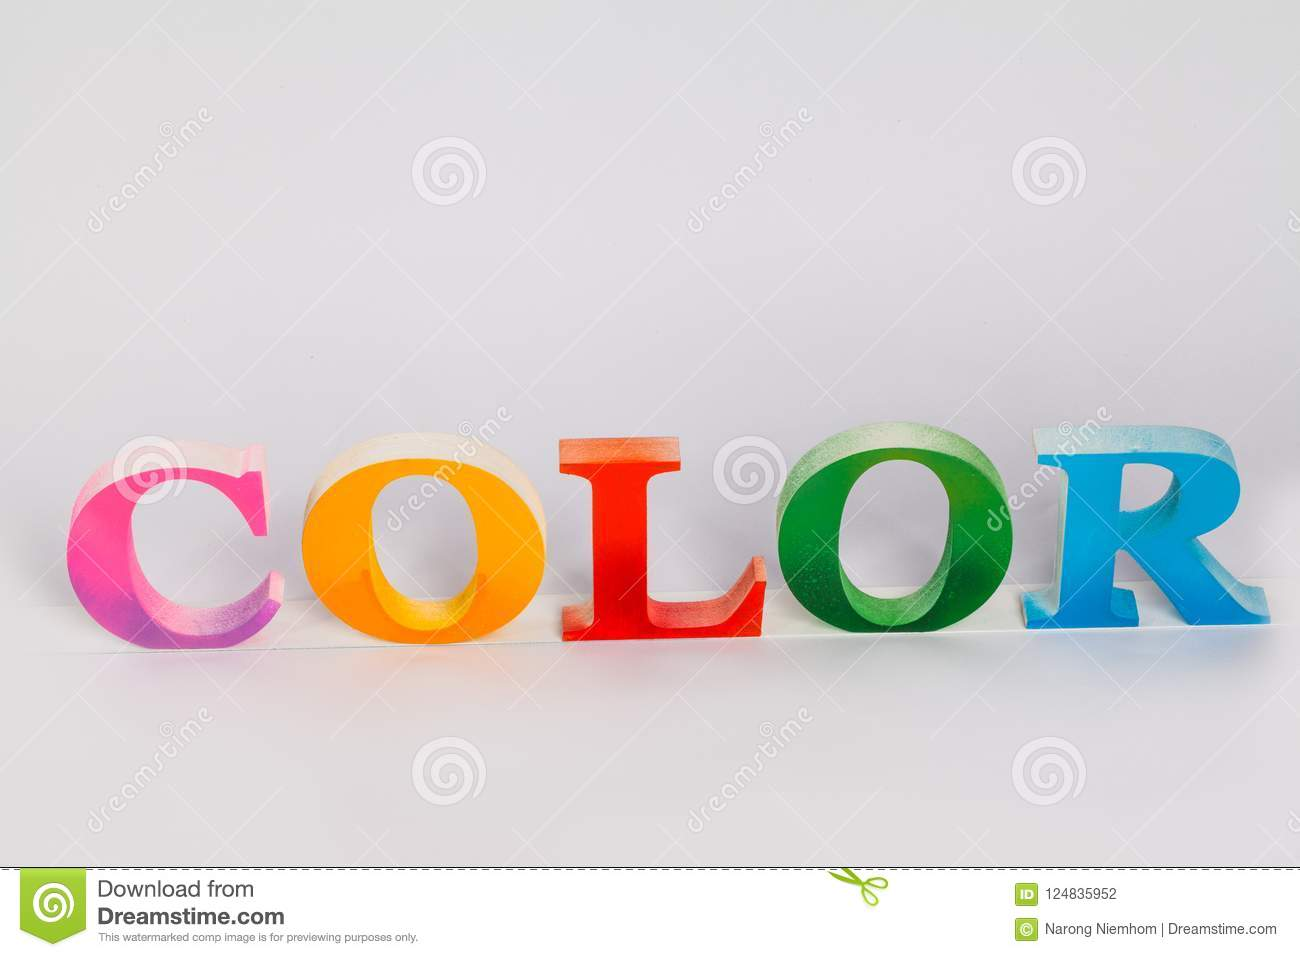 Download The Colorful Word Color Put On Screen Printing Ink Glass Bottles Stock Photo